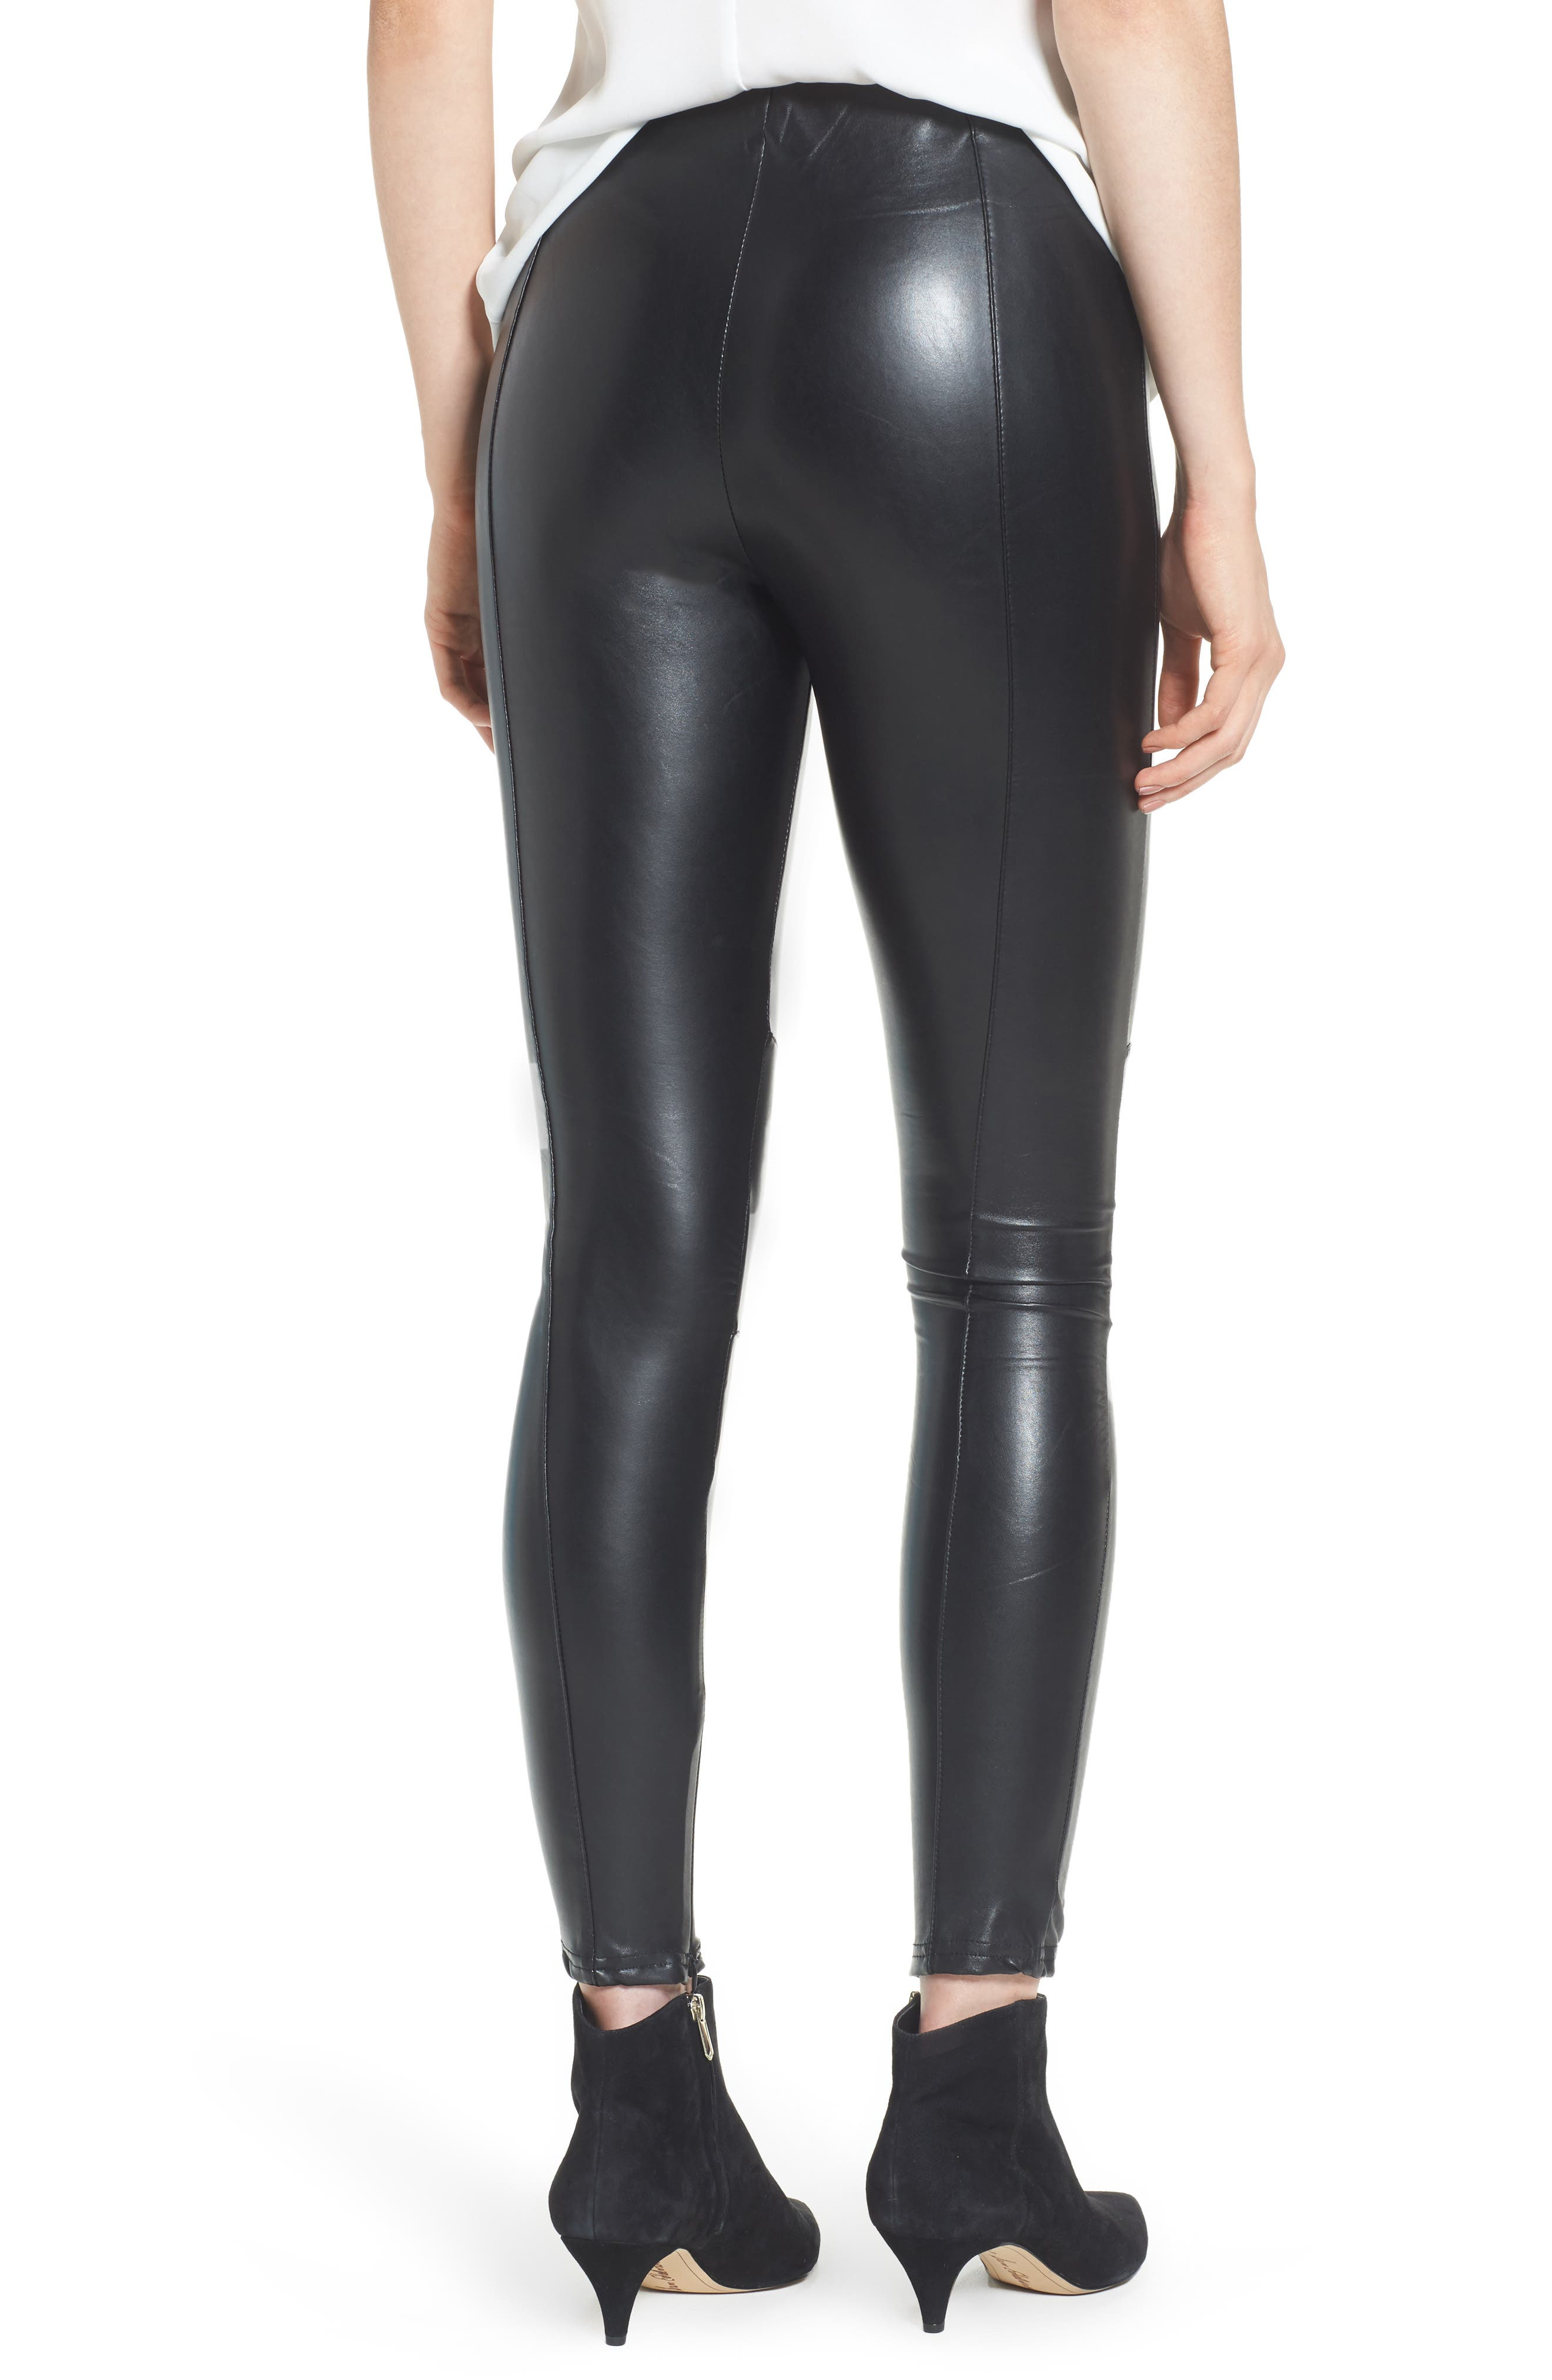 Bishop + Young Faux Leather Ankle Leggings,                             Alternate thumbnail 2, color,                             001